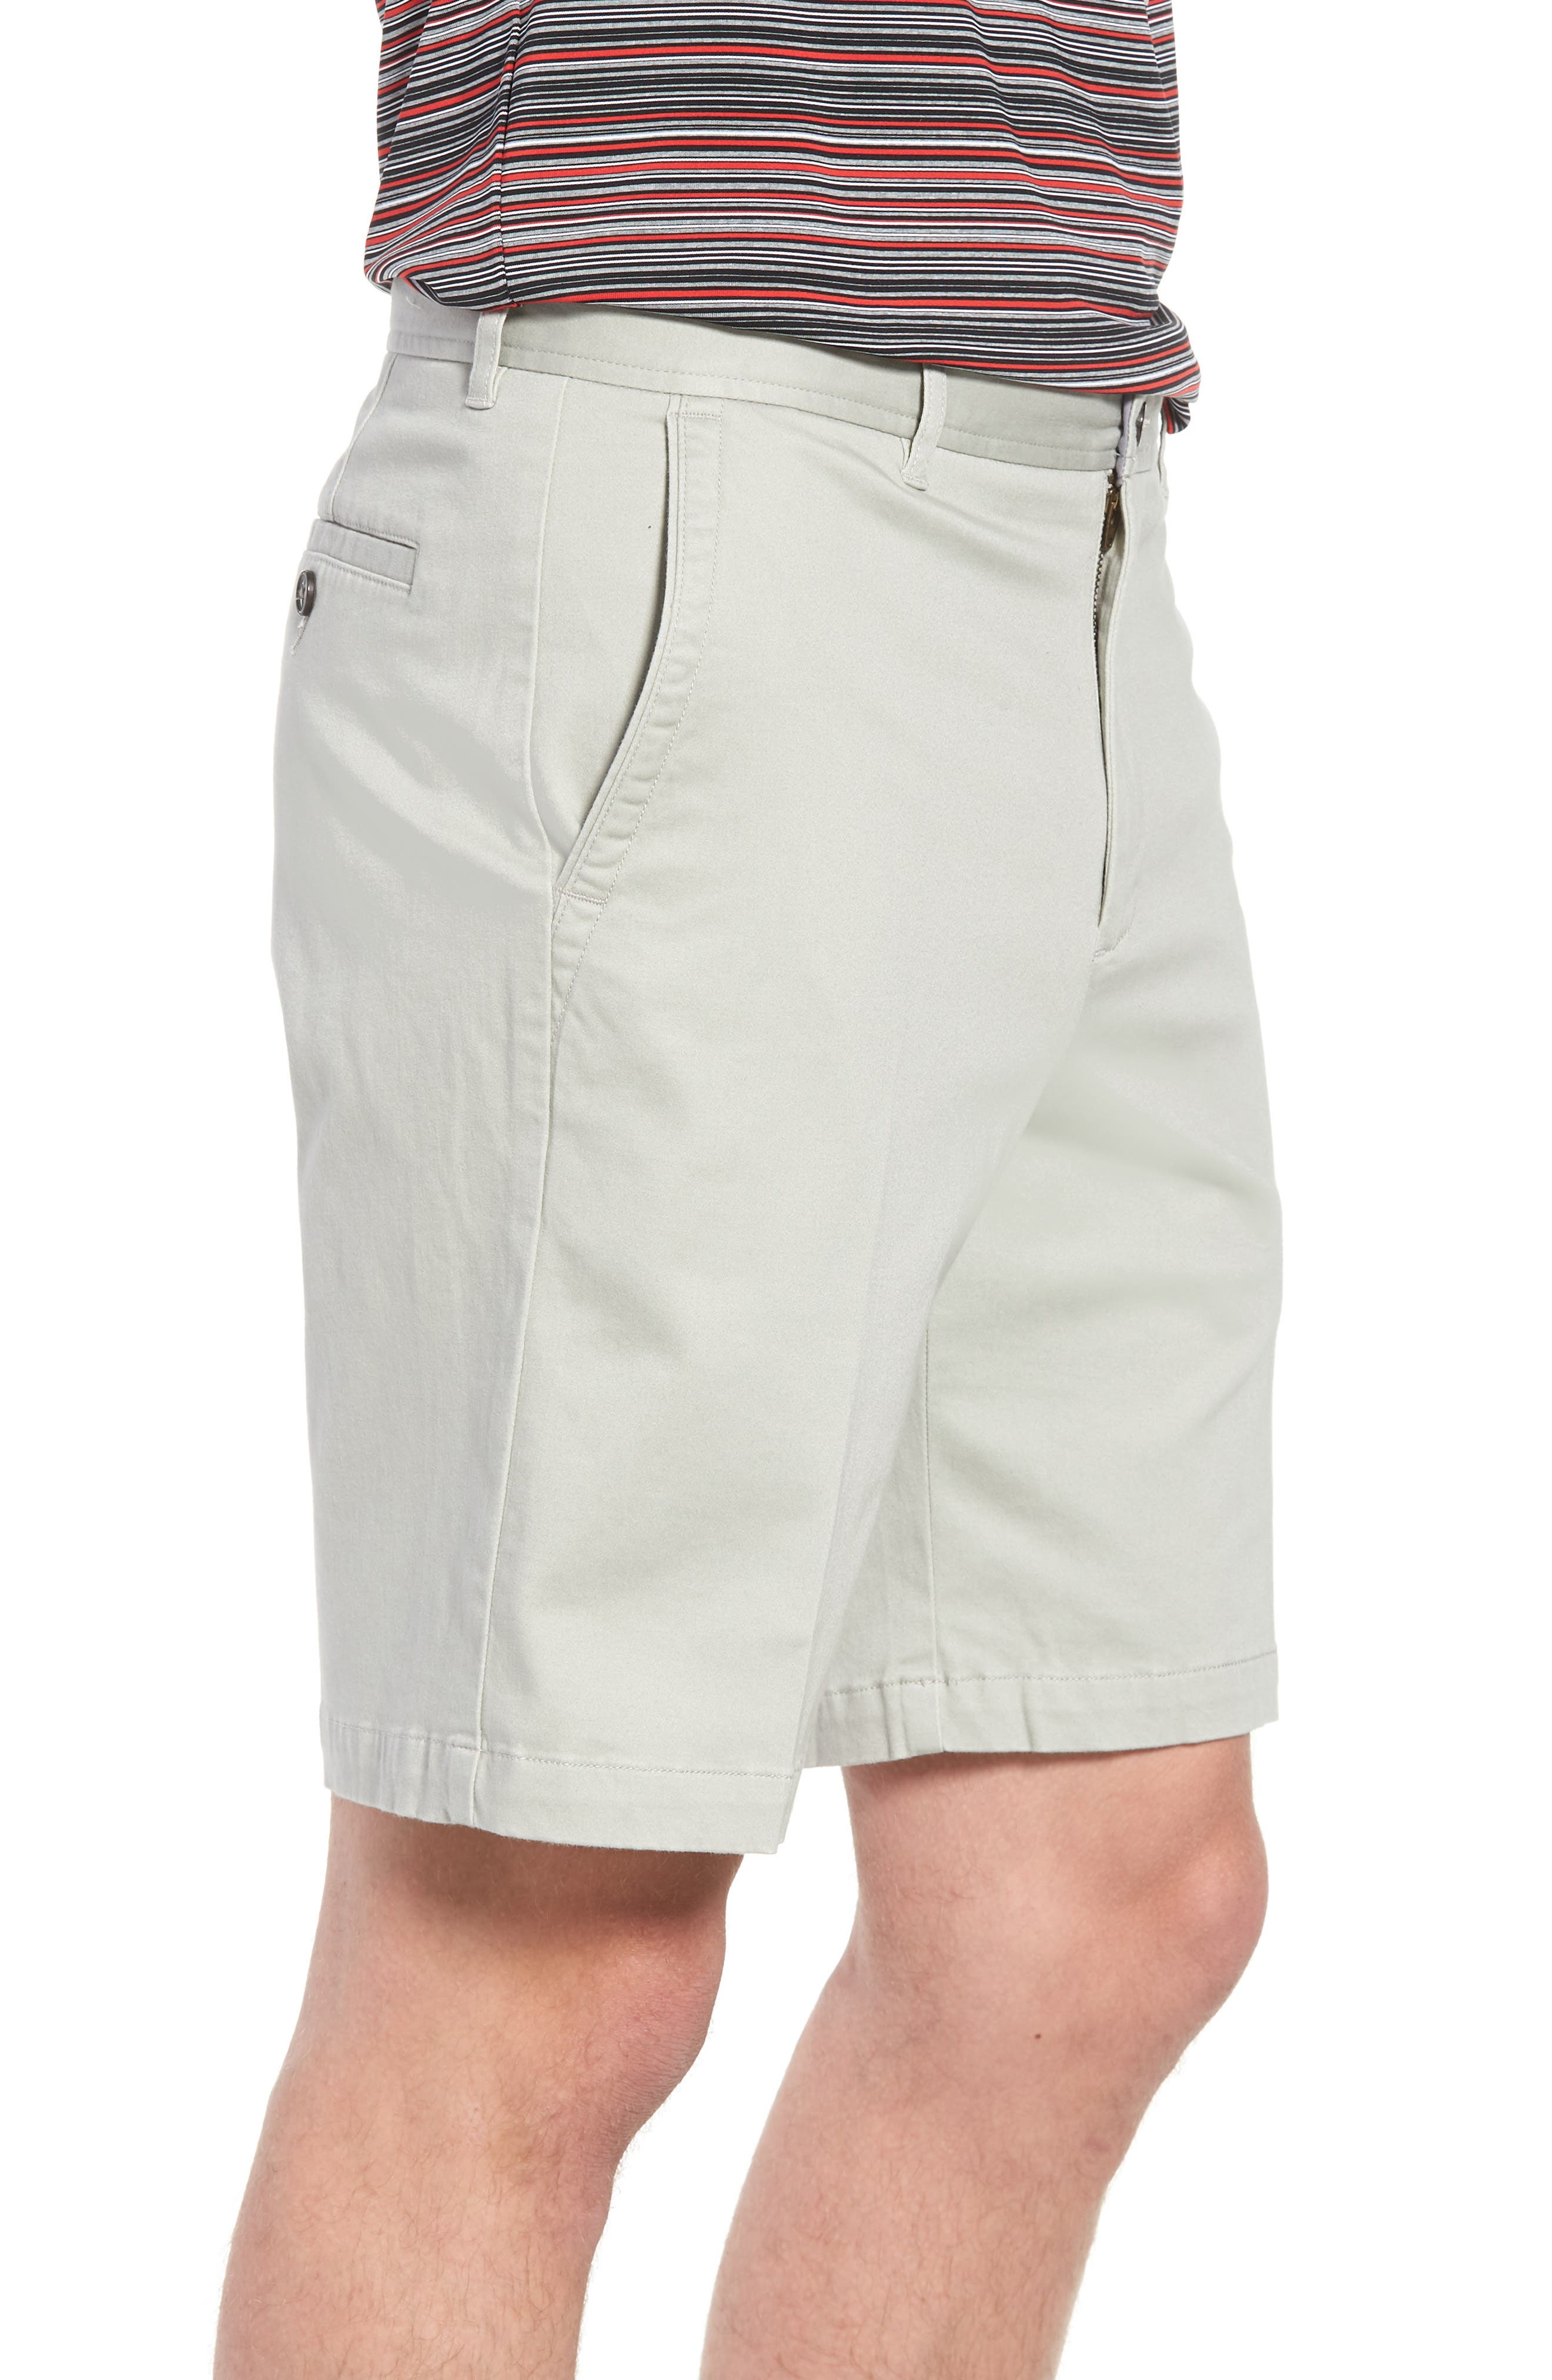 St. Charles Stretch Twill Shorts,                             Alternate thumbnail 3, color,                             051